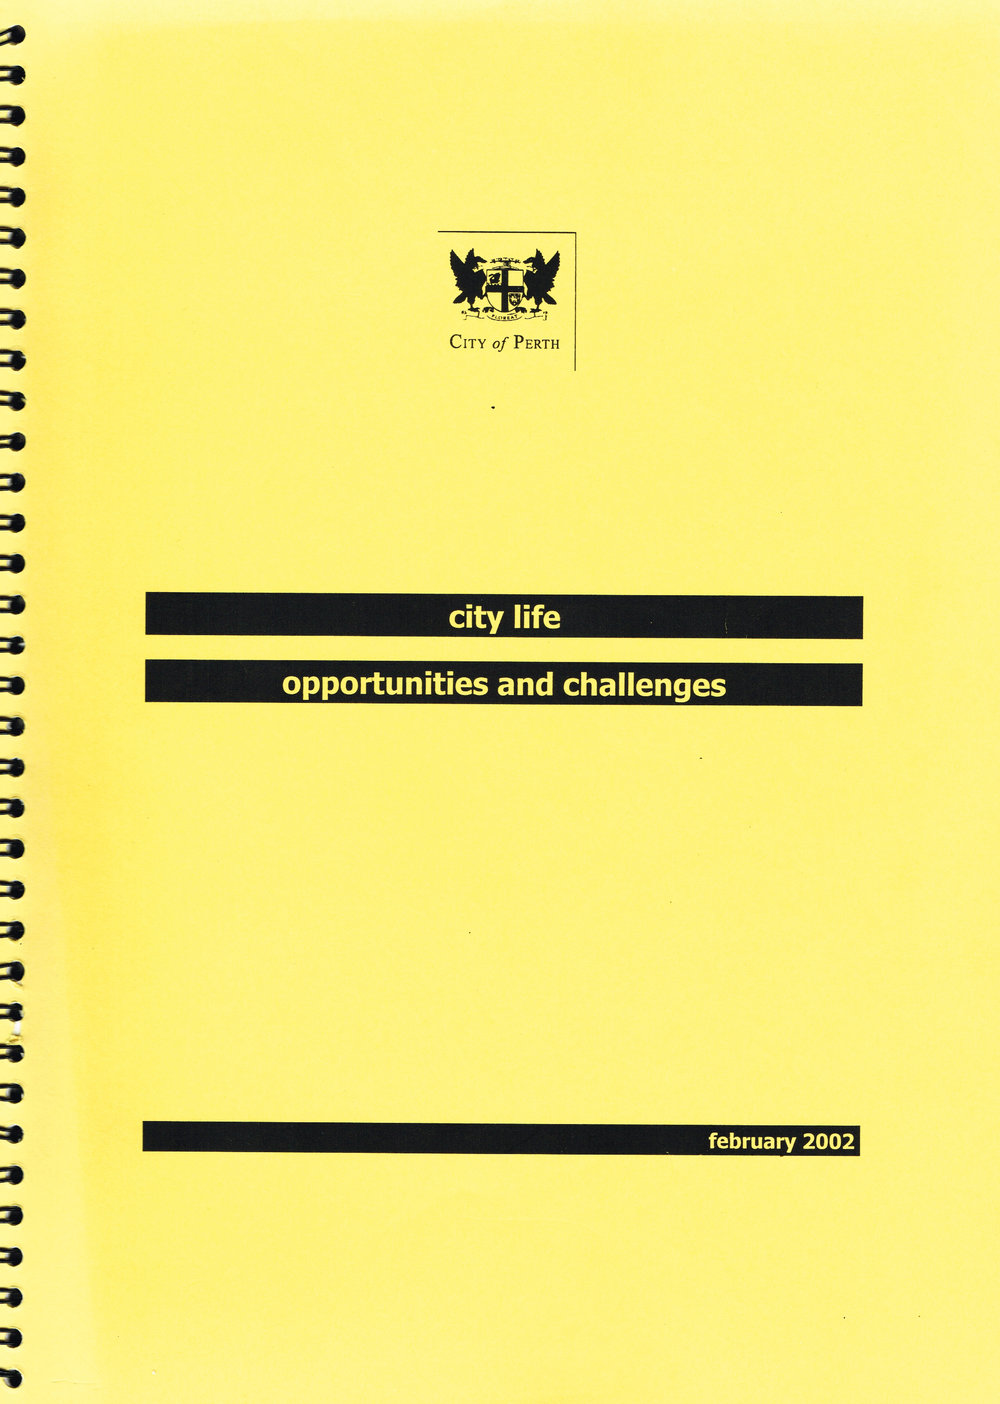 City Life : Opportunities and Challenges, February 2002  City of Perth